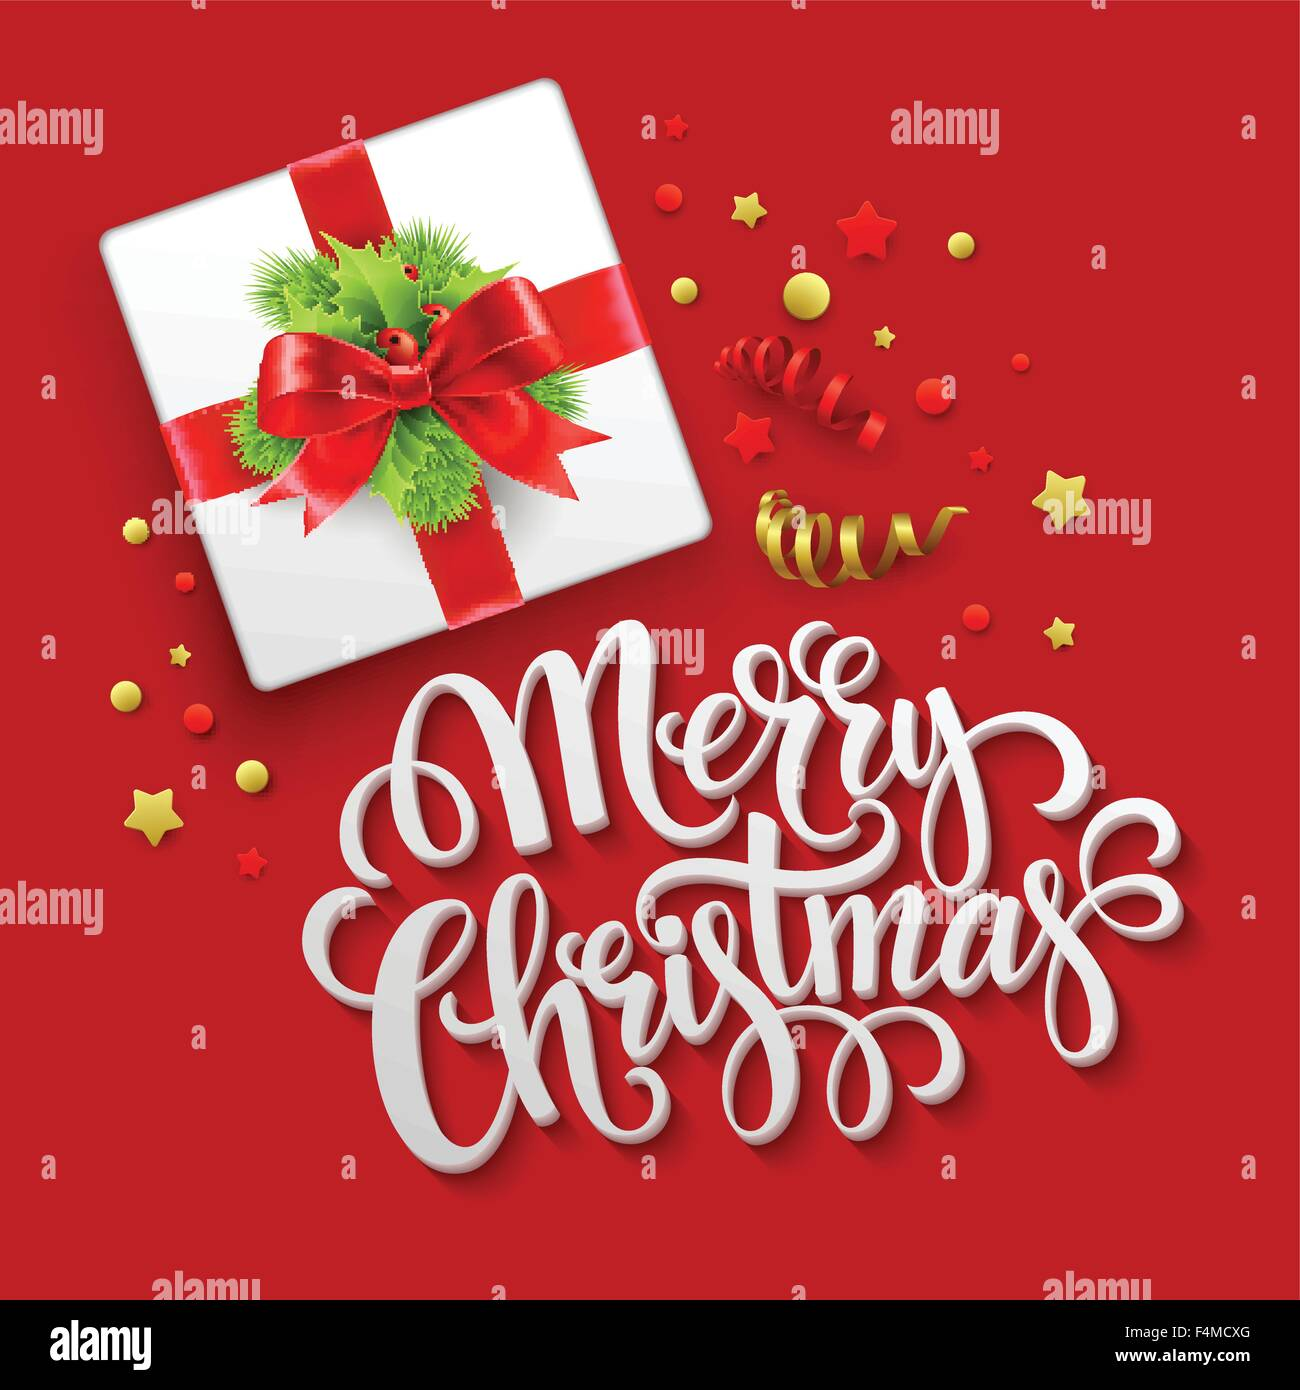 Merry Christmas Greeting Card Christmas Gift Box Vector Stock